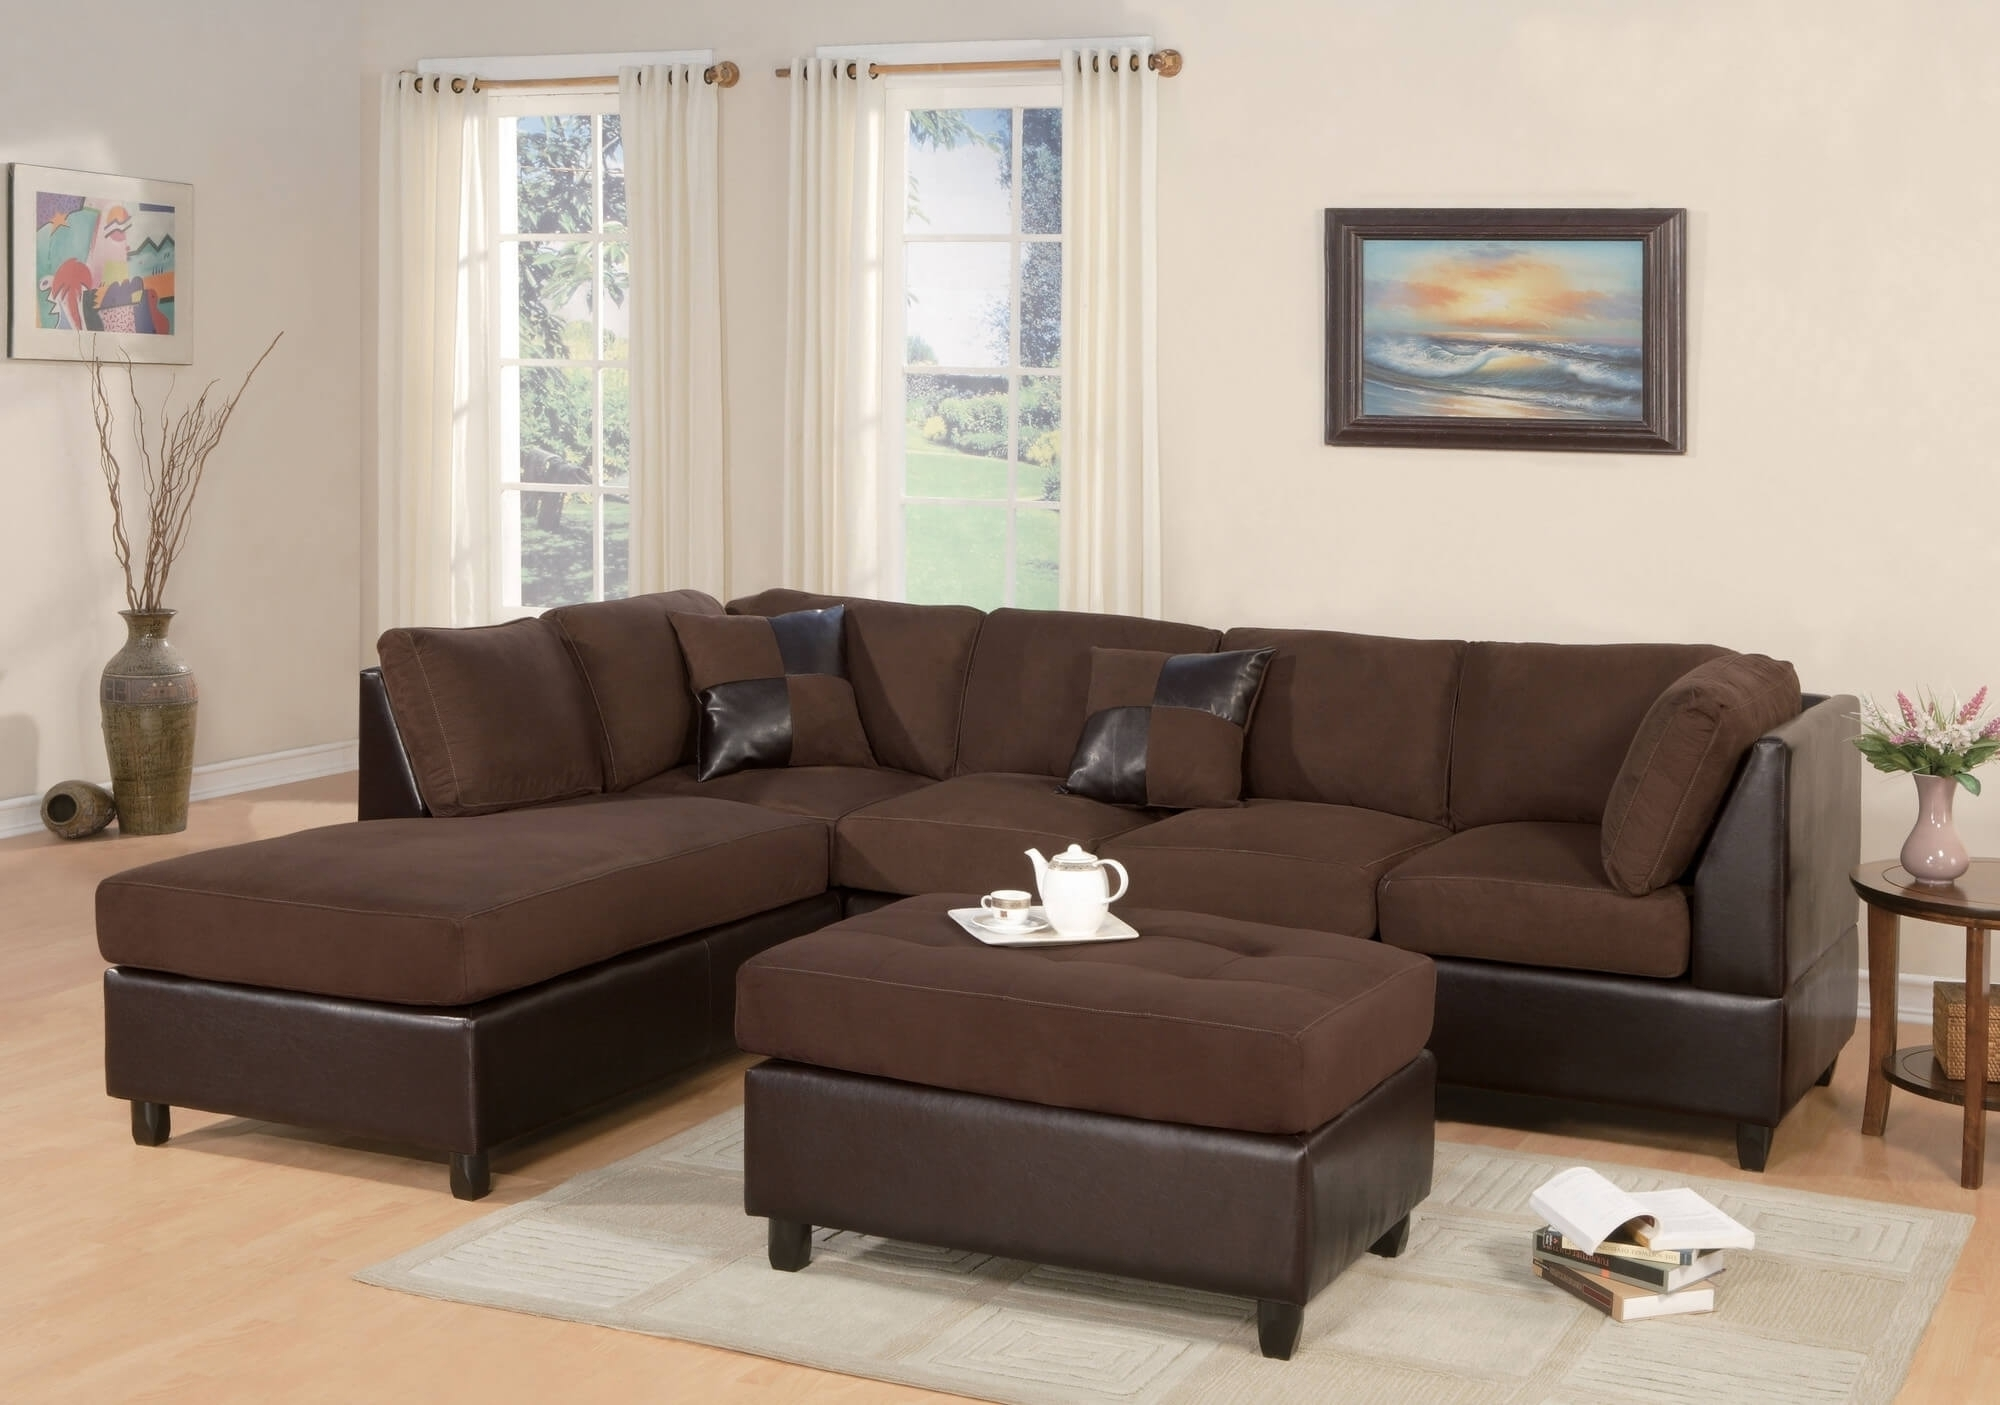 Current Photos Sectional Sofas Under $1000 – Buildsimplehome For Sectional Sofas Under  (View 4 of 20)